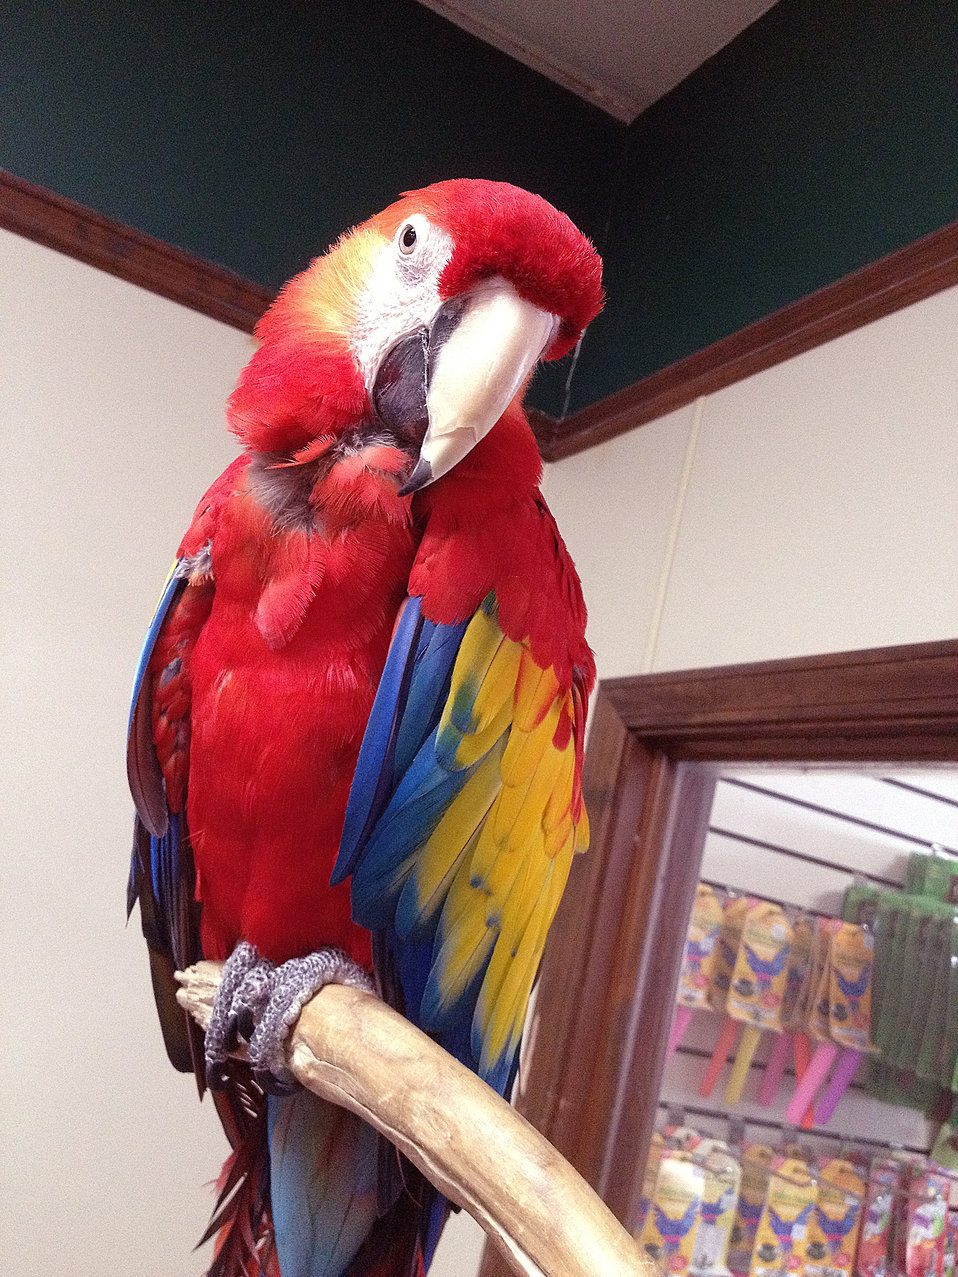 This image depicts a beautifully-colored adult parrot known as a Scarlet Macaw, or Aracanga, Ara macao, which can be found in its native hab